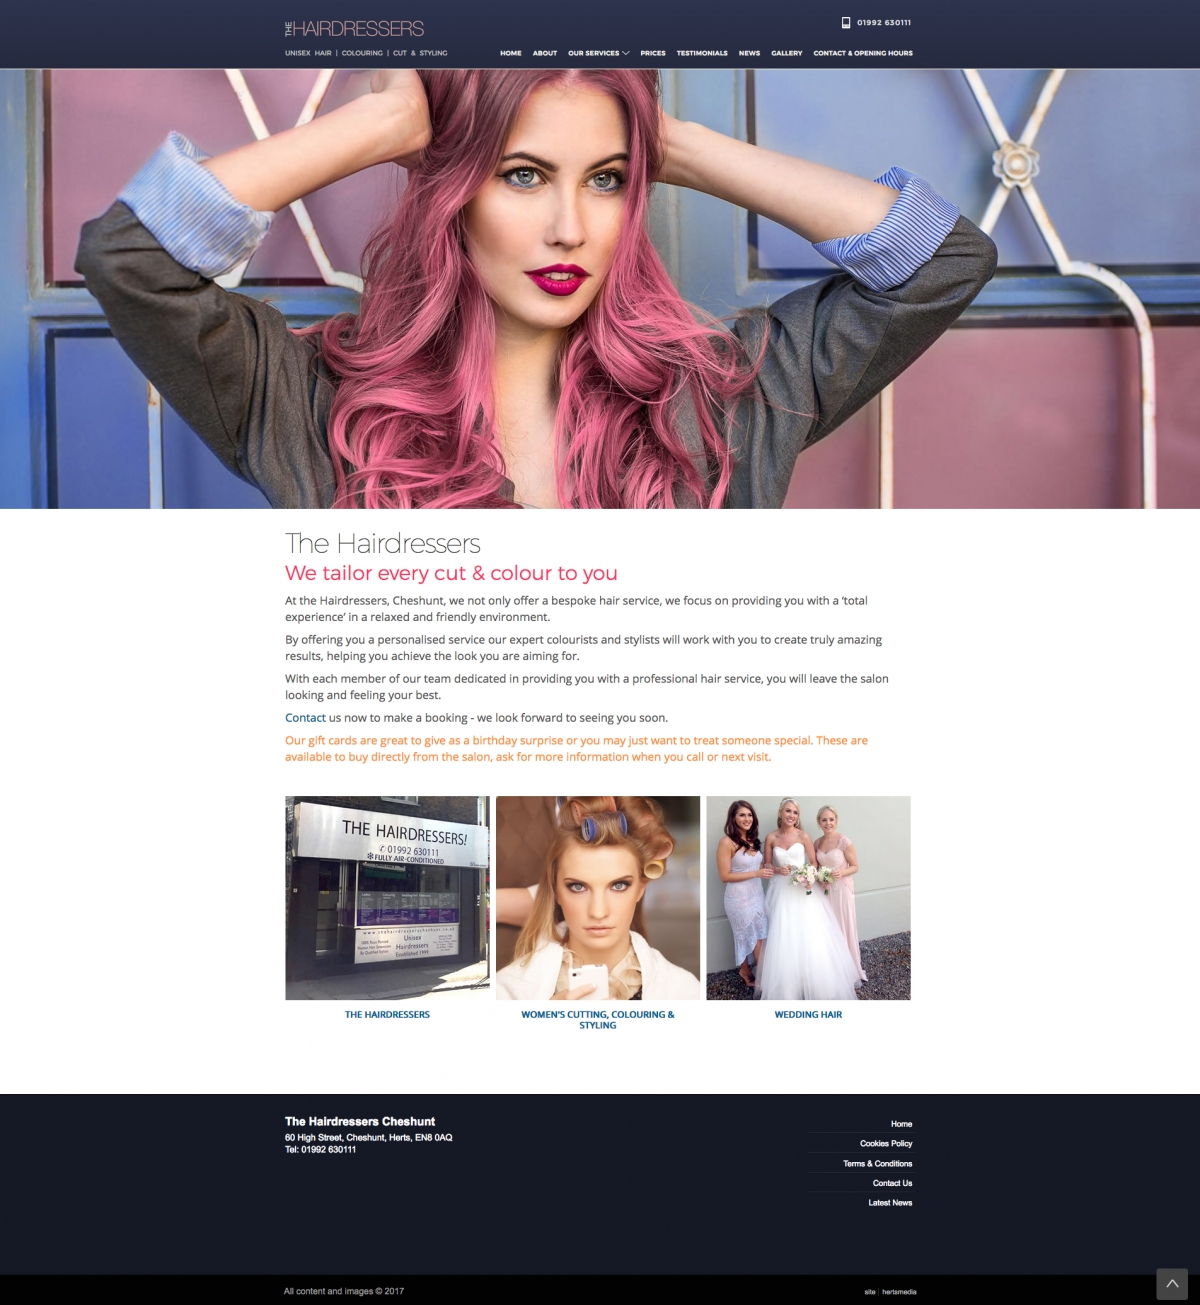 New website for The Hairdressers Cheshunt